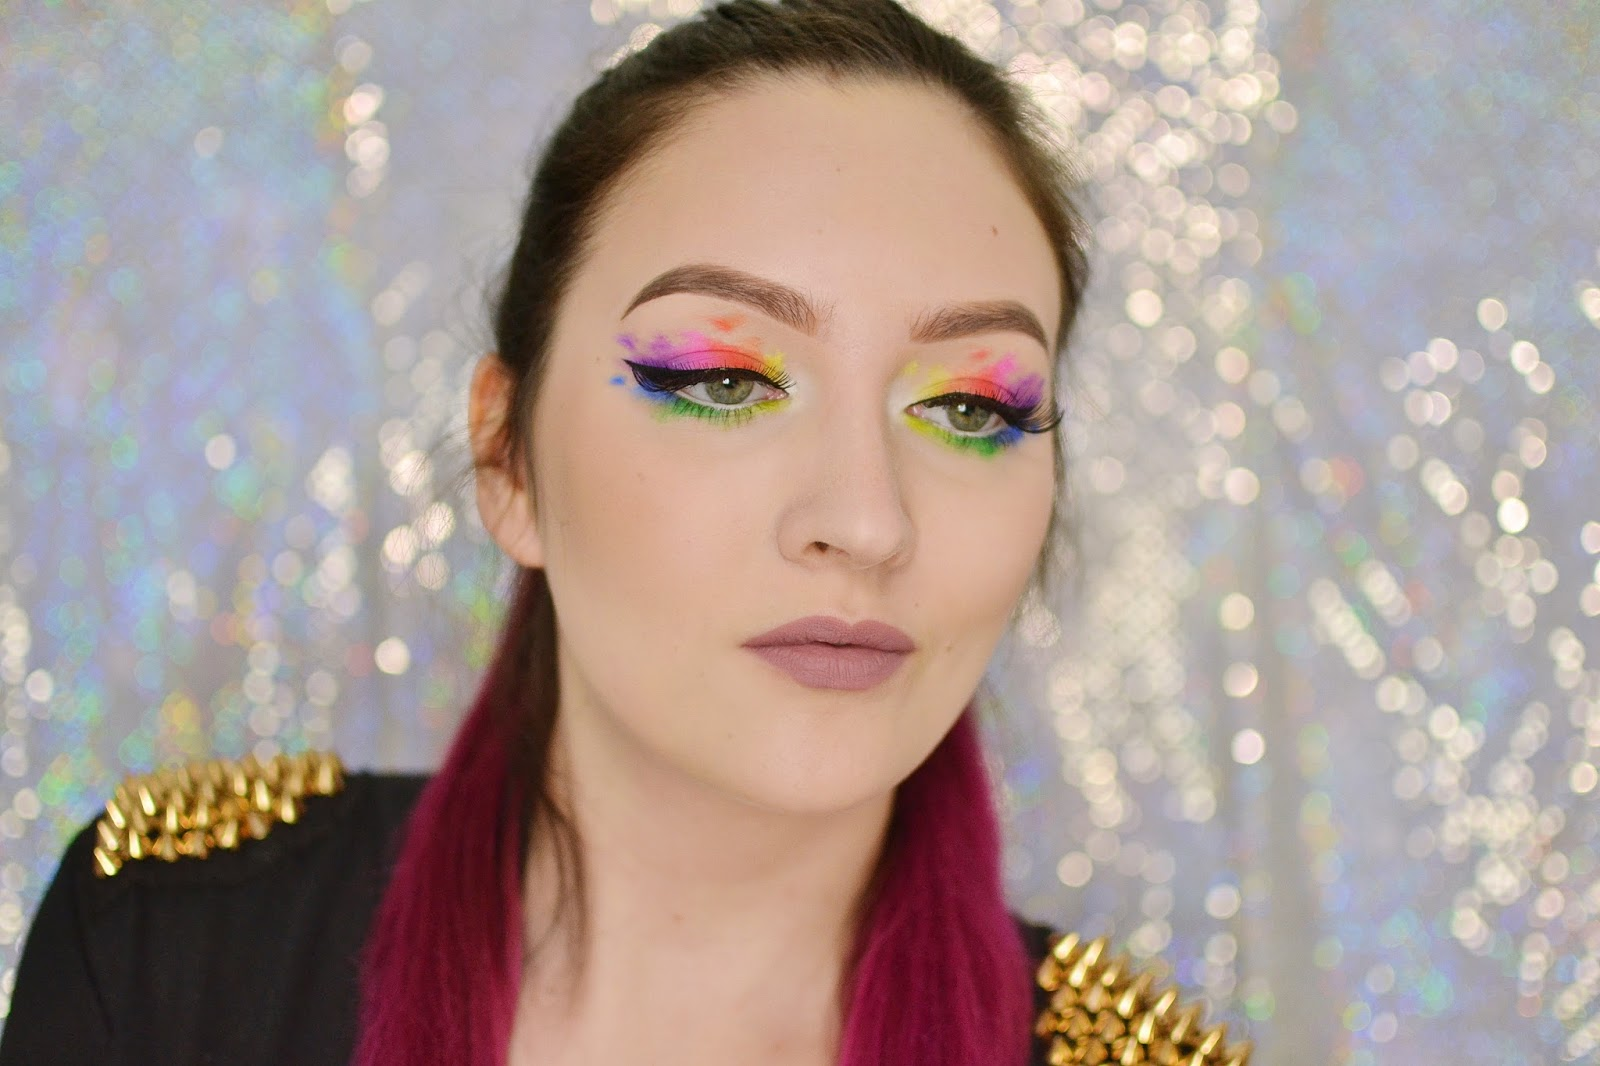 WATERCOLOR MAKEUP TUTORIAL